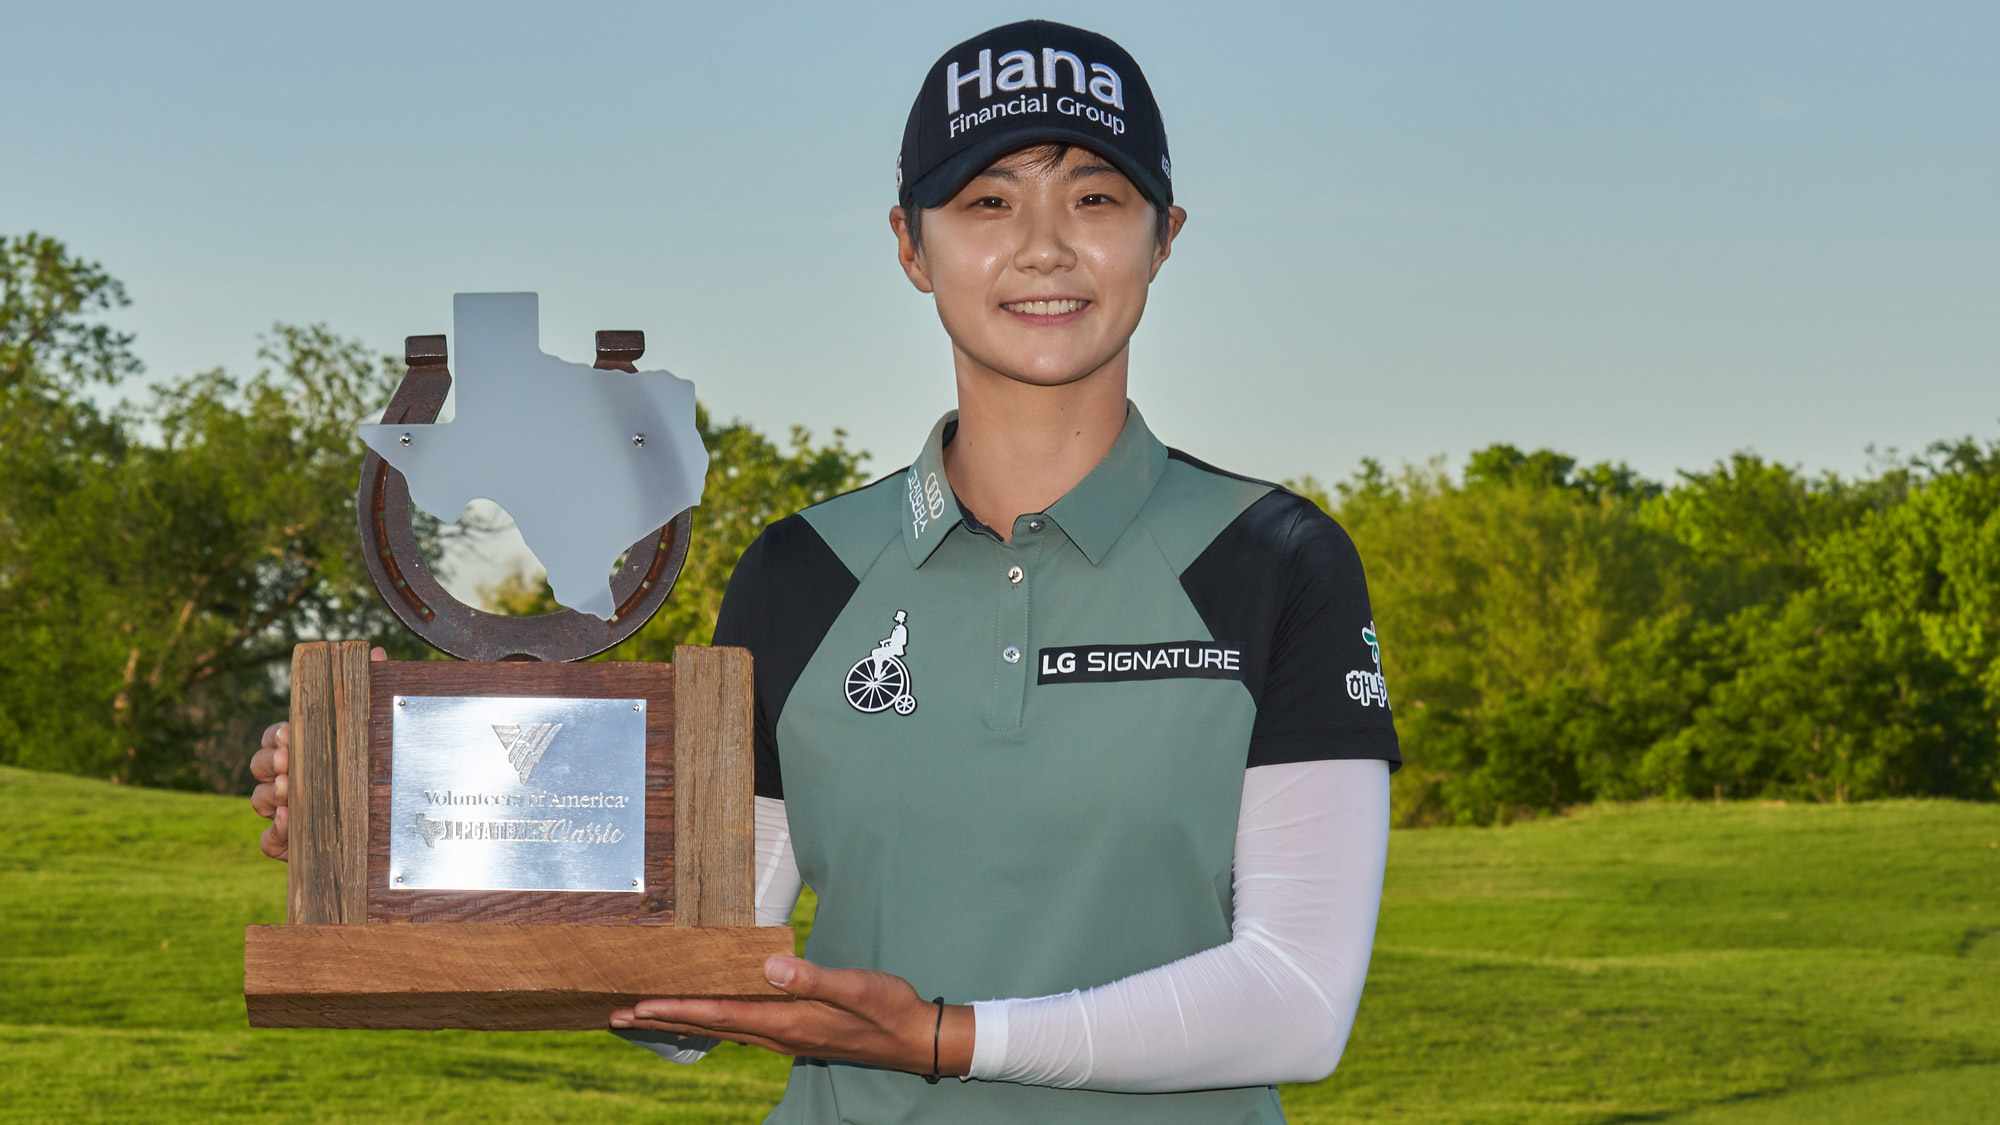 Sung Hyun Park Holds Trophy at VOA LPGA Texas Classic